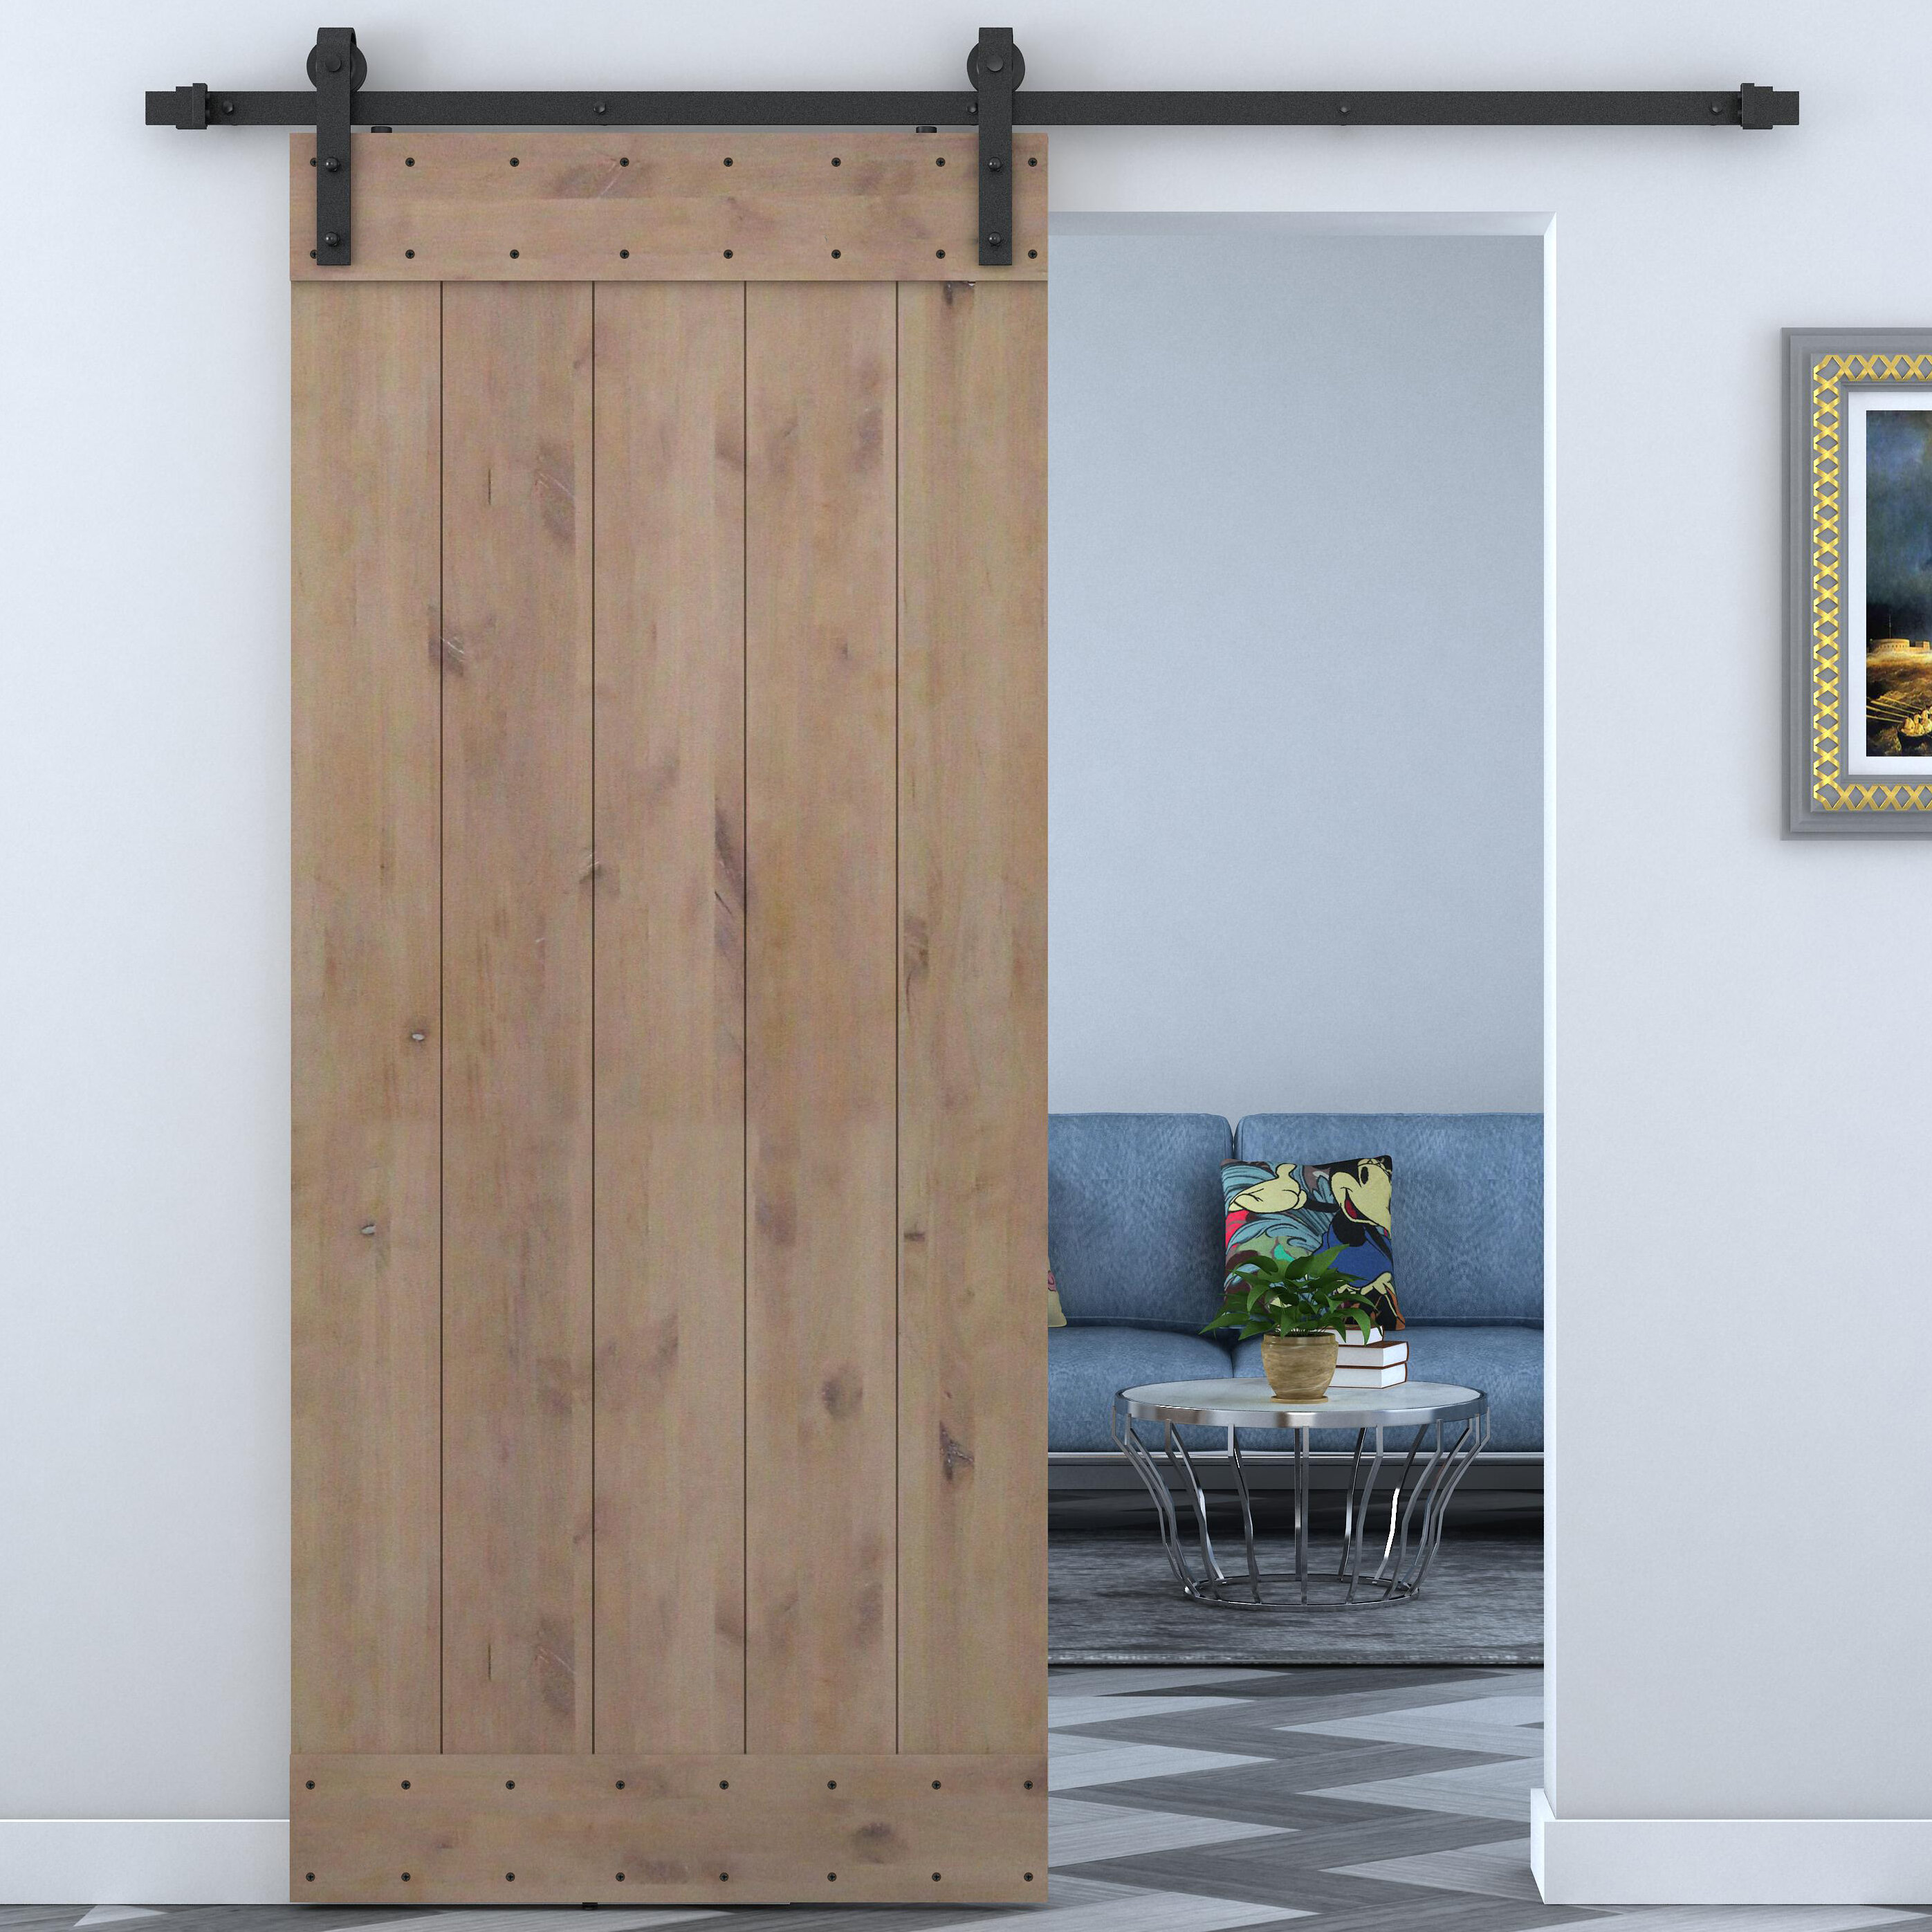 Calhome Flush Paneled Wood Primed Barn Door With Installation Hardware Kit Reviews Wayfair